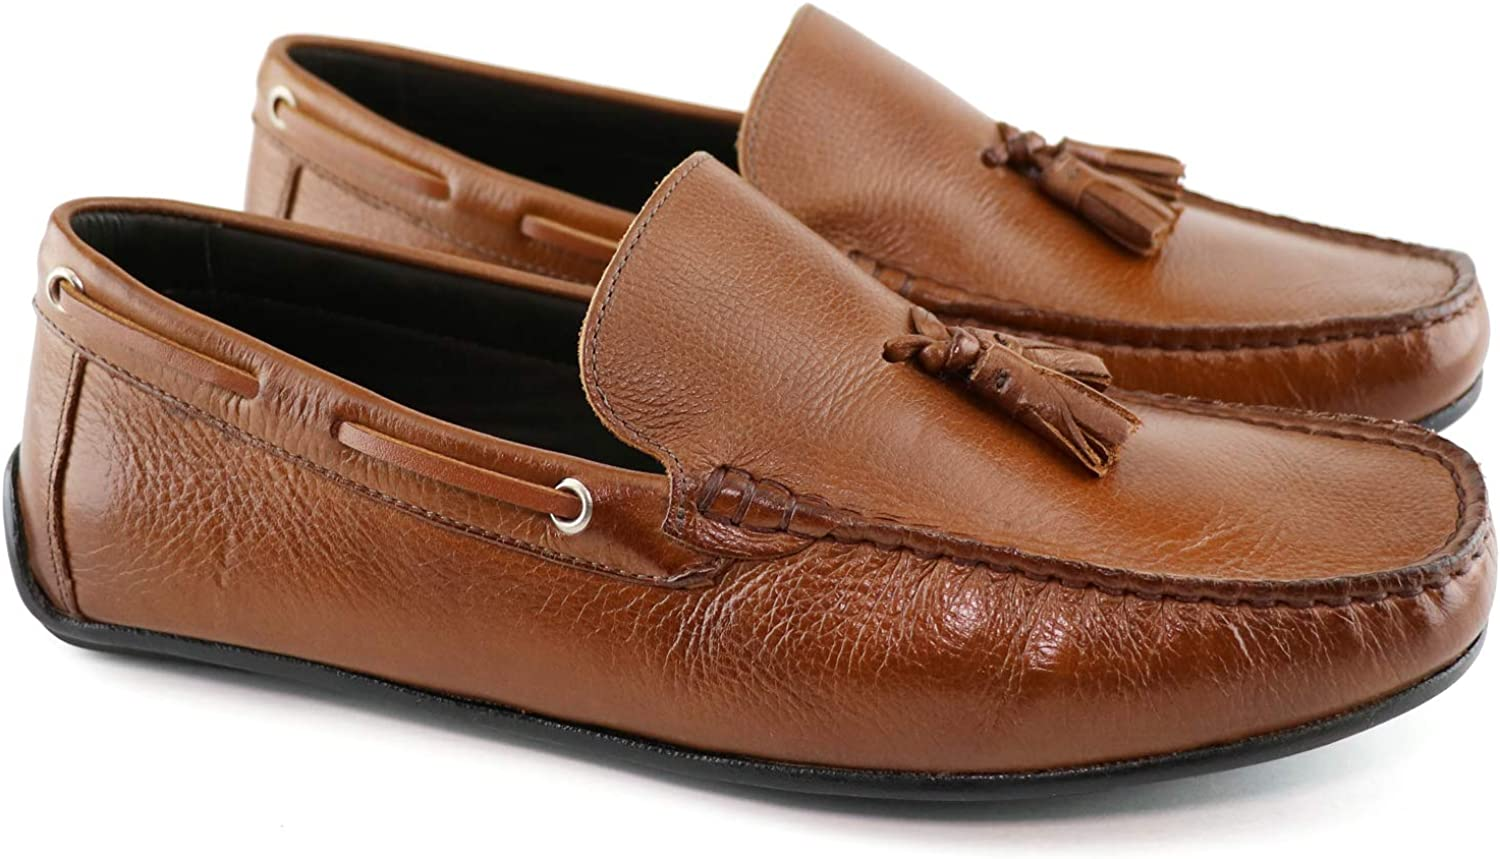 MJNY Mens Casual Comfortable Genuine Leather Lightweight Driving Moccasins Classic Fashion Tassel Loafer Slip On Breathable Driving Loafer